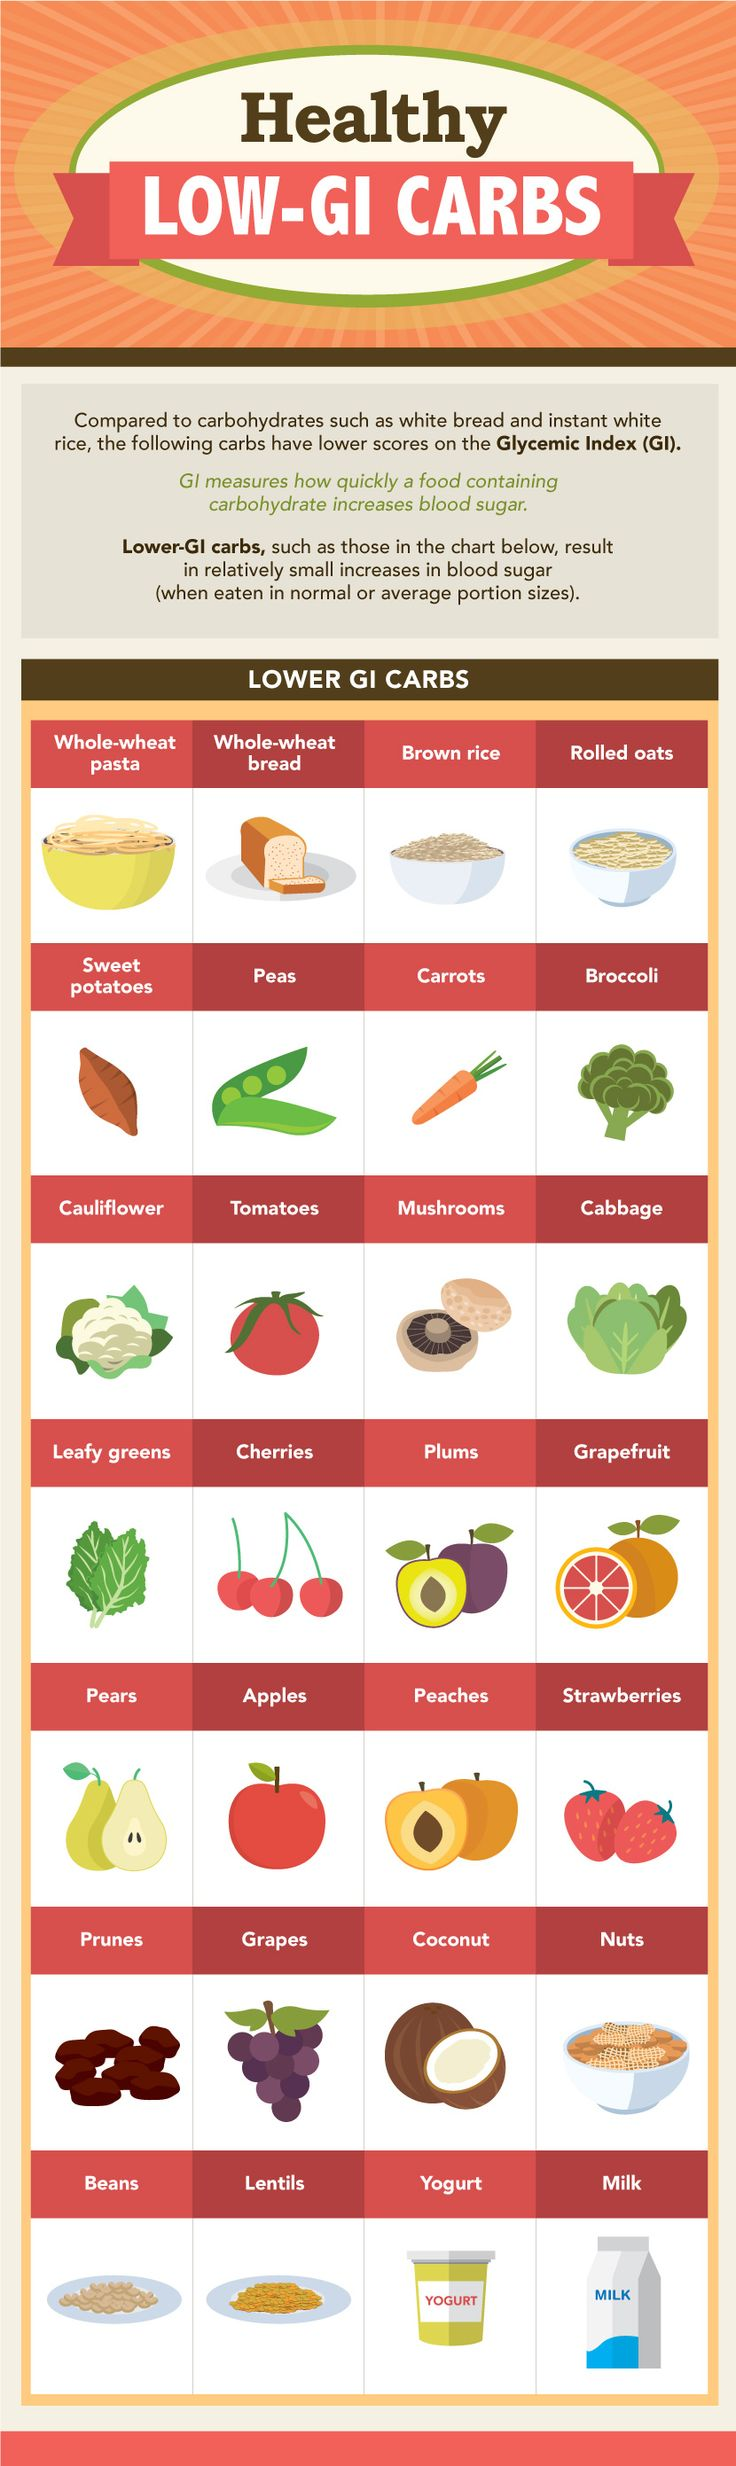 List of Healthy Low Glycemic Index Carbohydrates